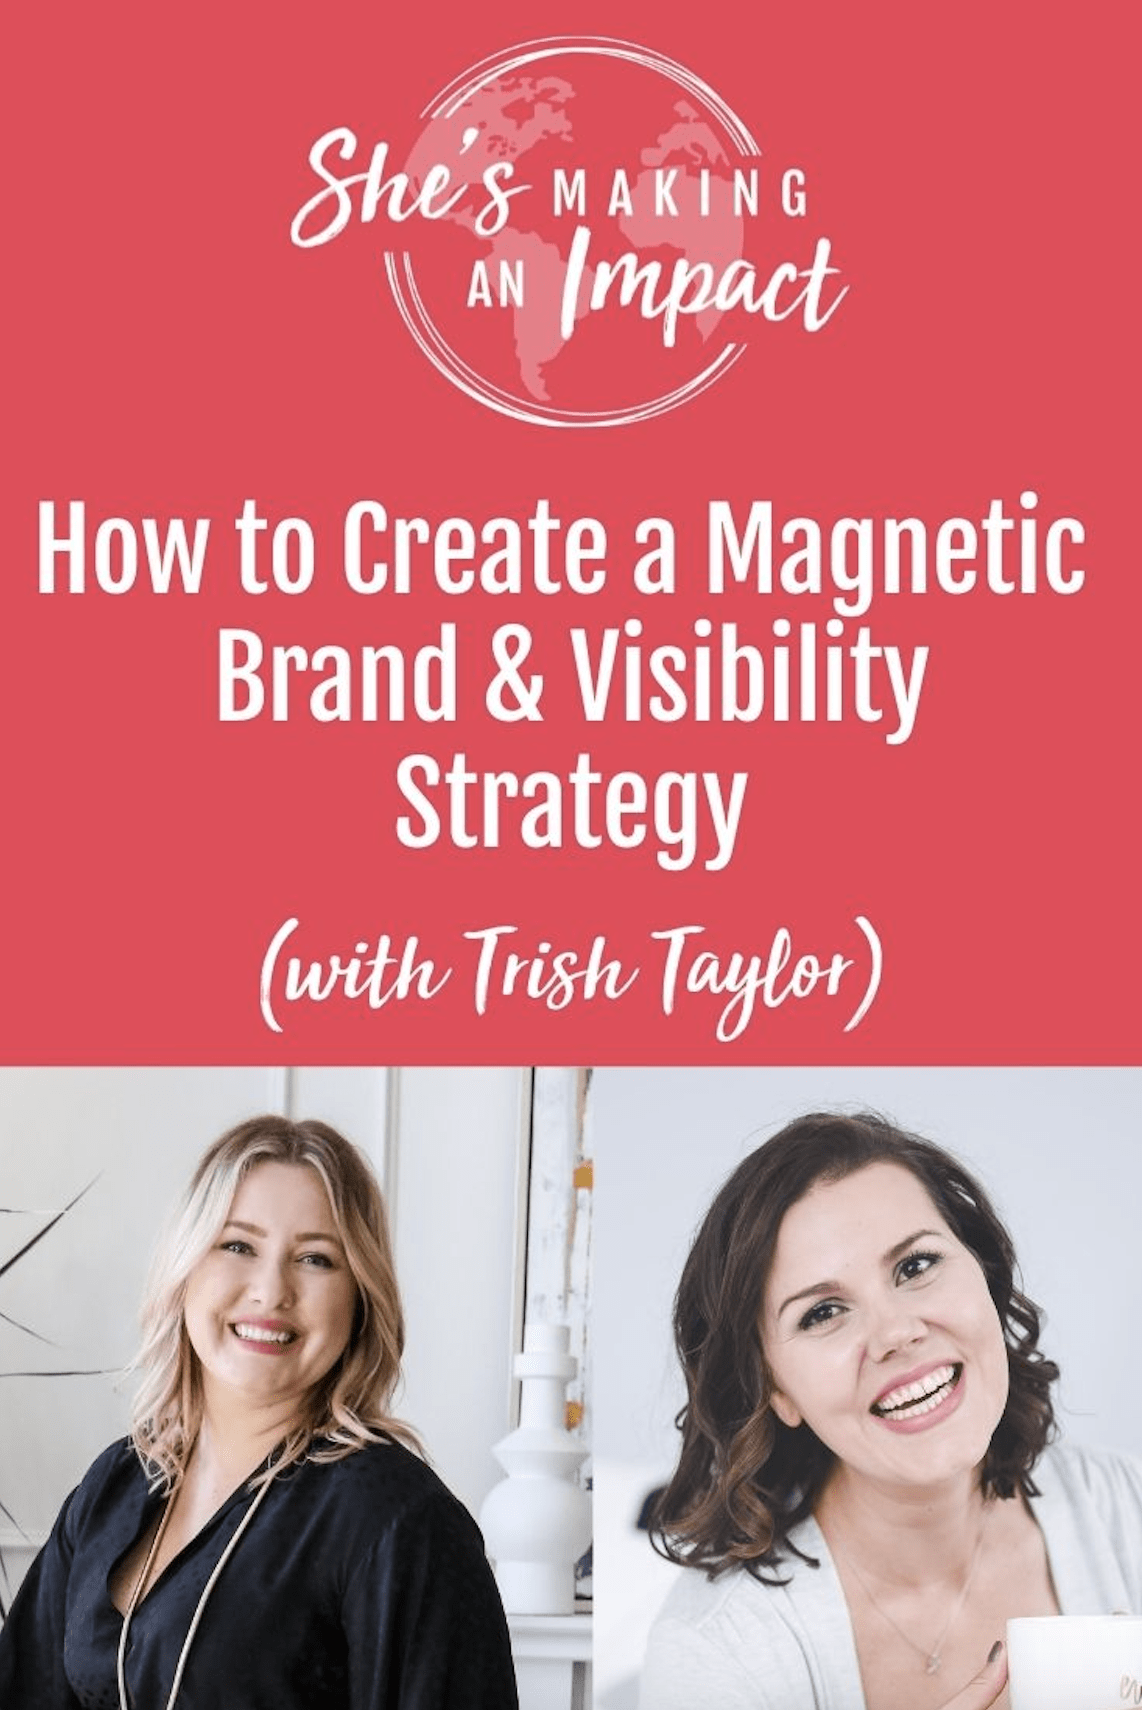 How to Create a Magnetic Brand and Visibility Strategy (with Trish Taylor)